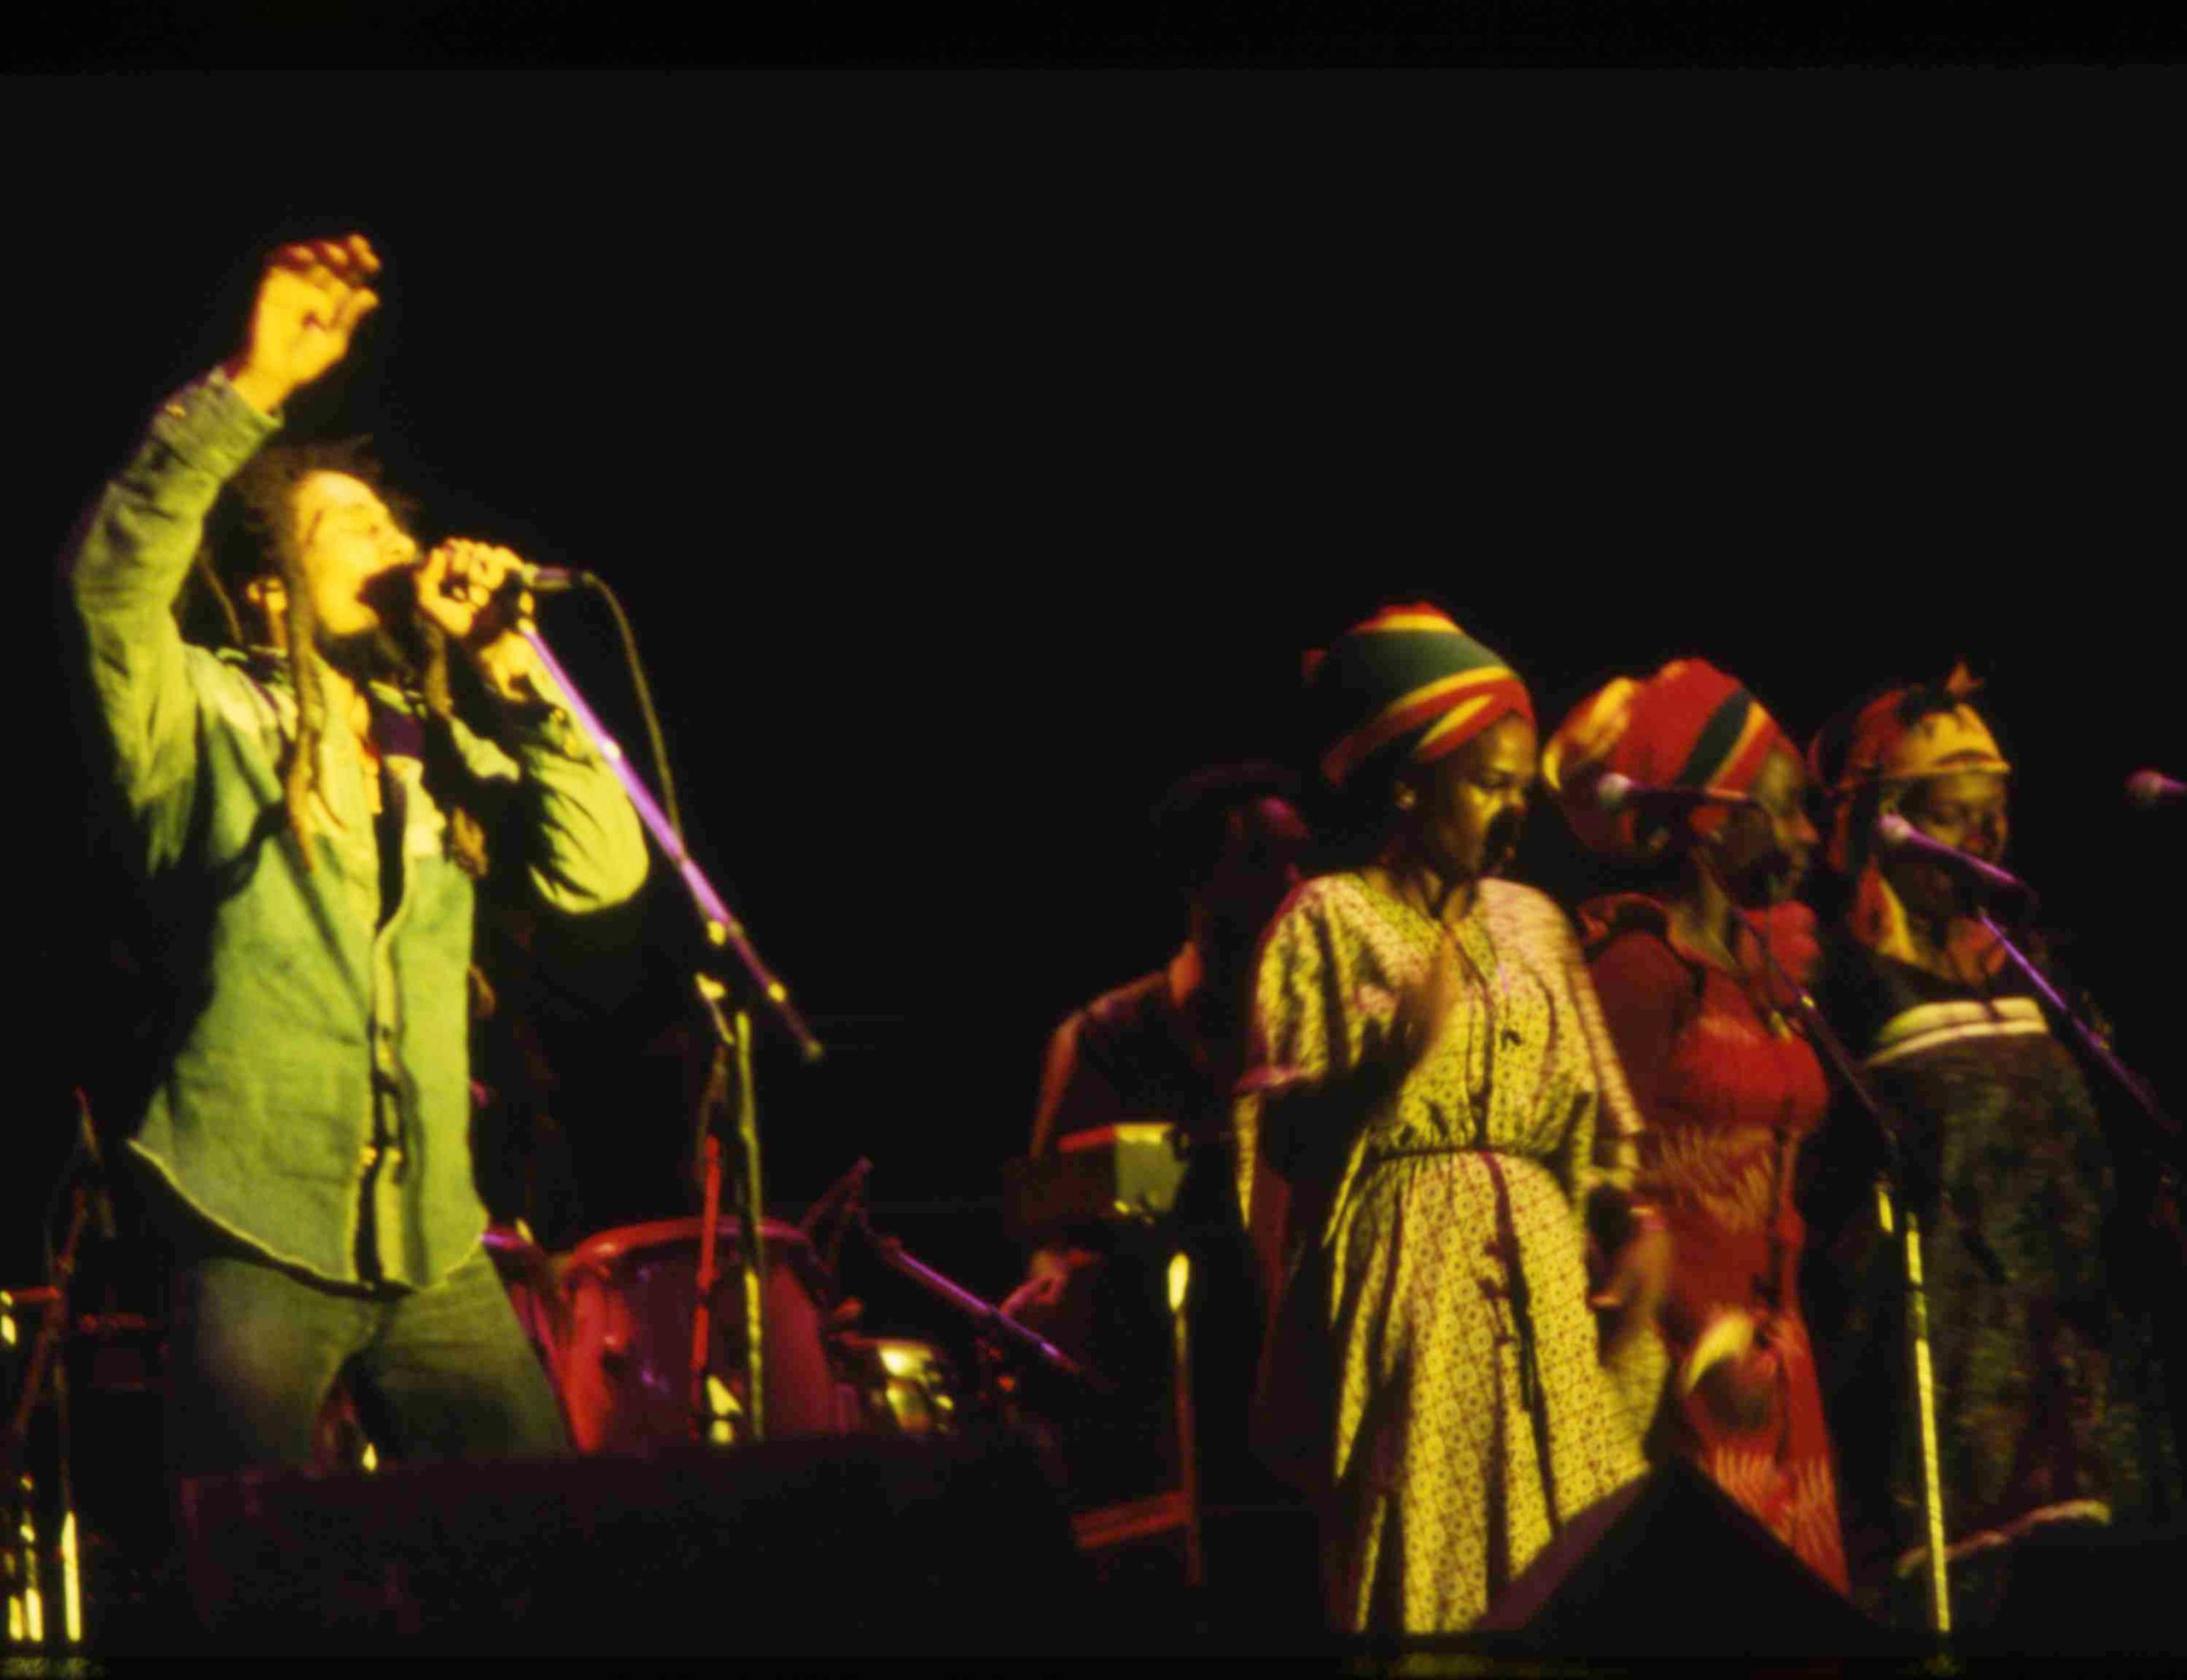 Bob Marley paid his way to play Zimbabwe independence concert